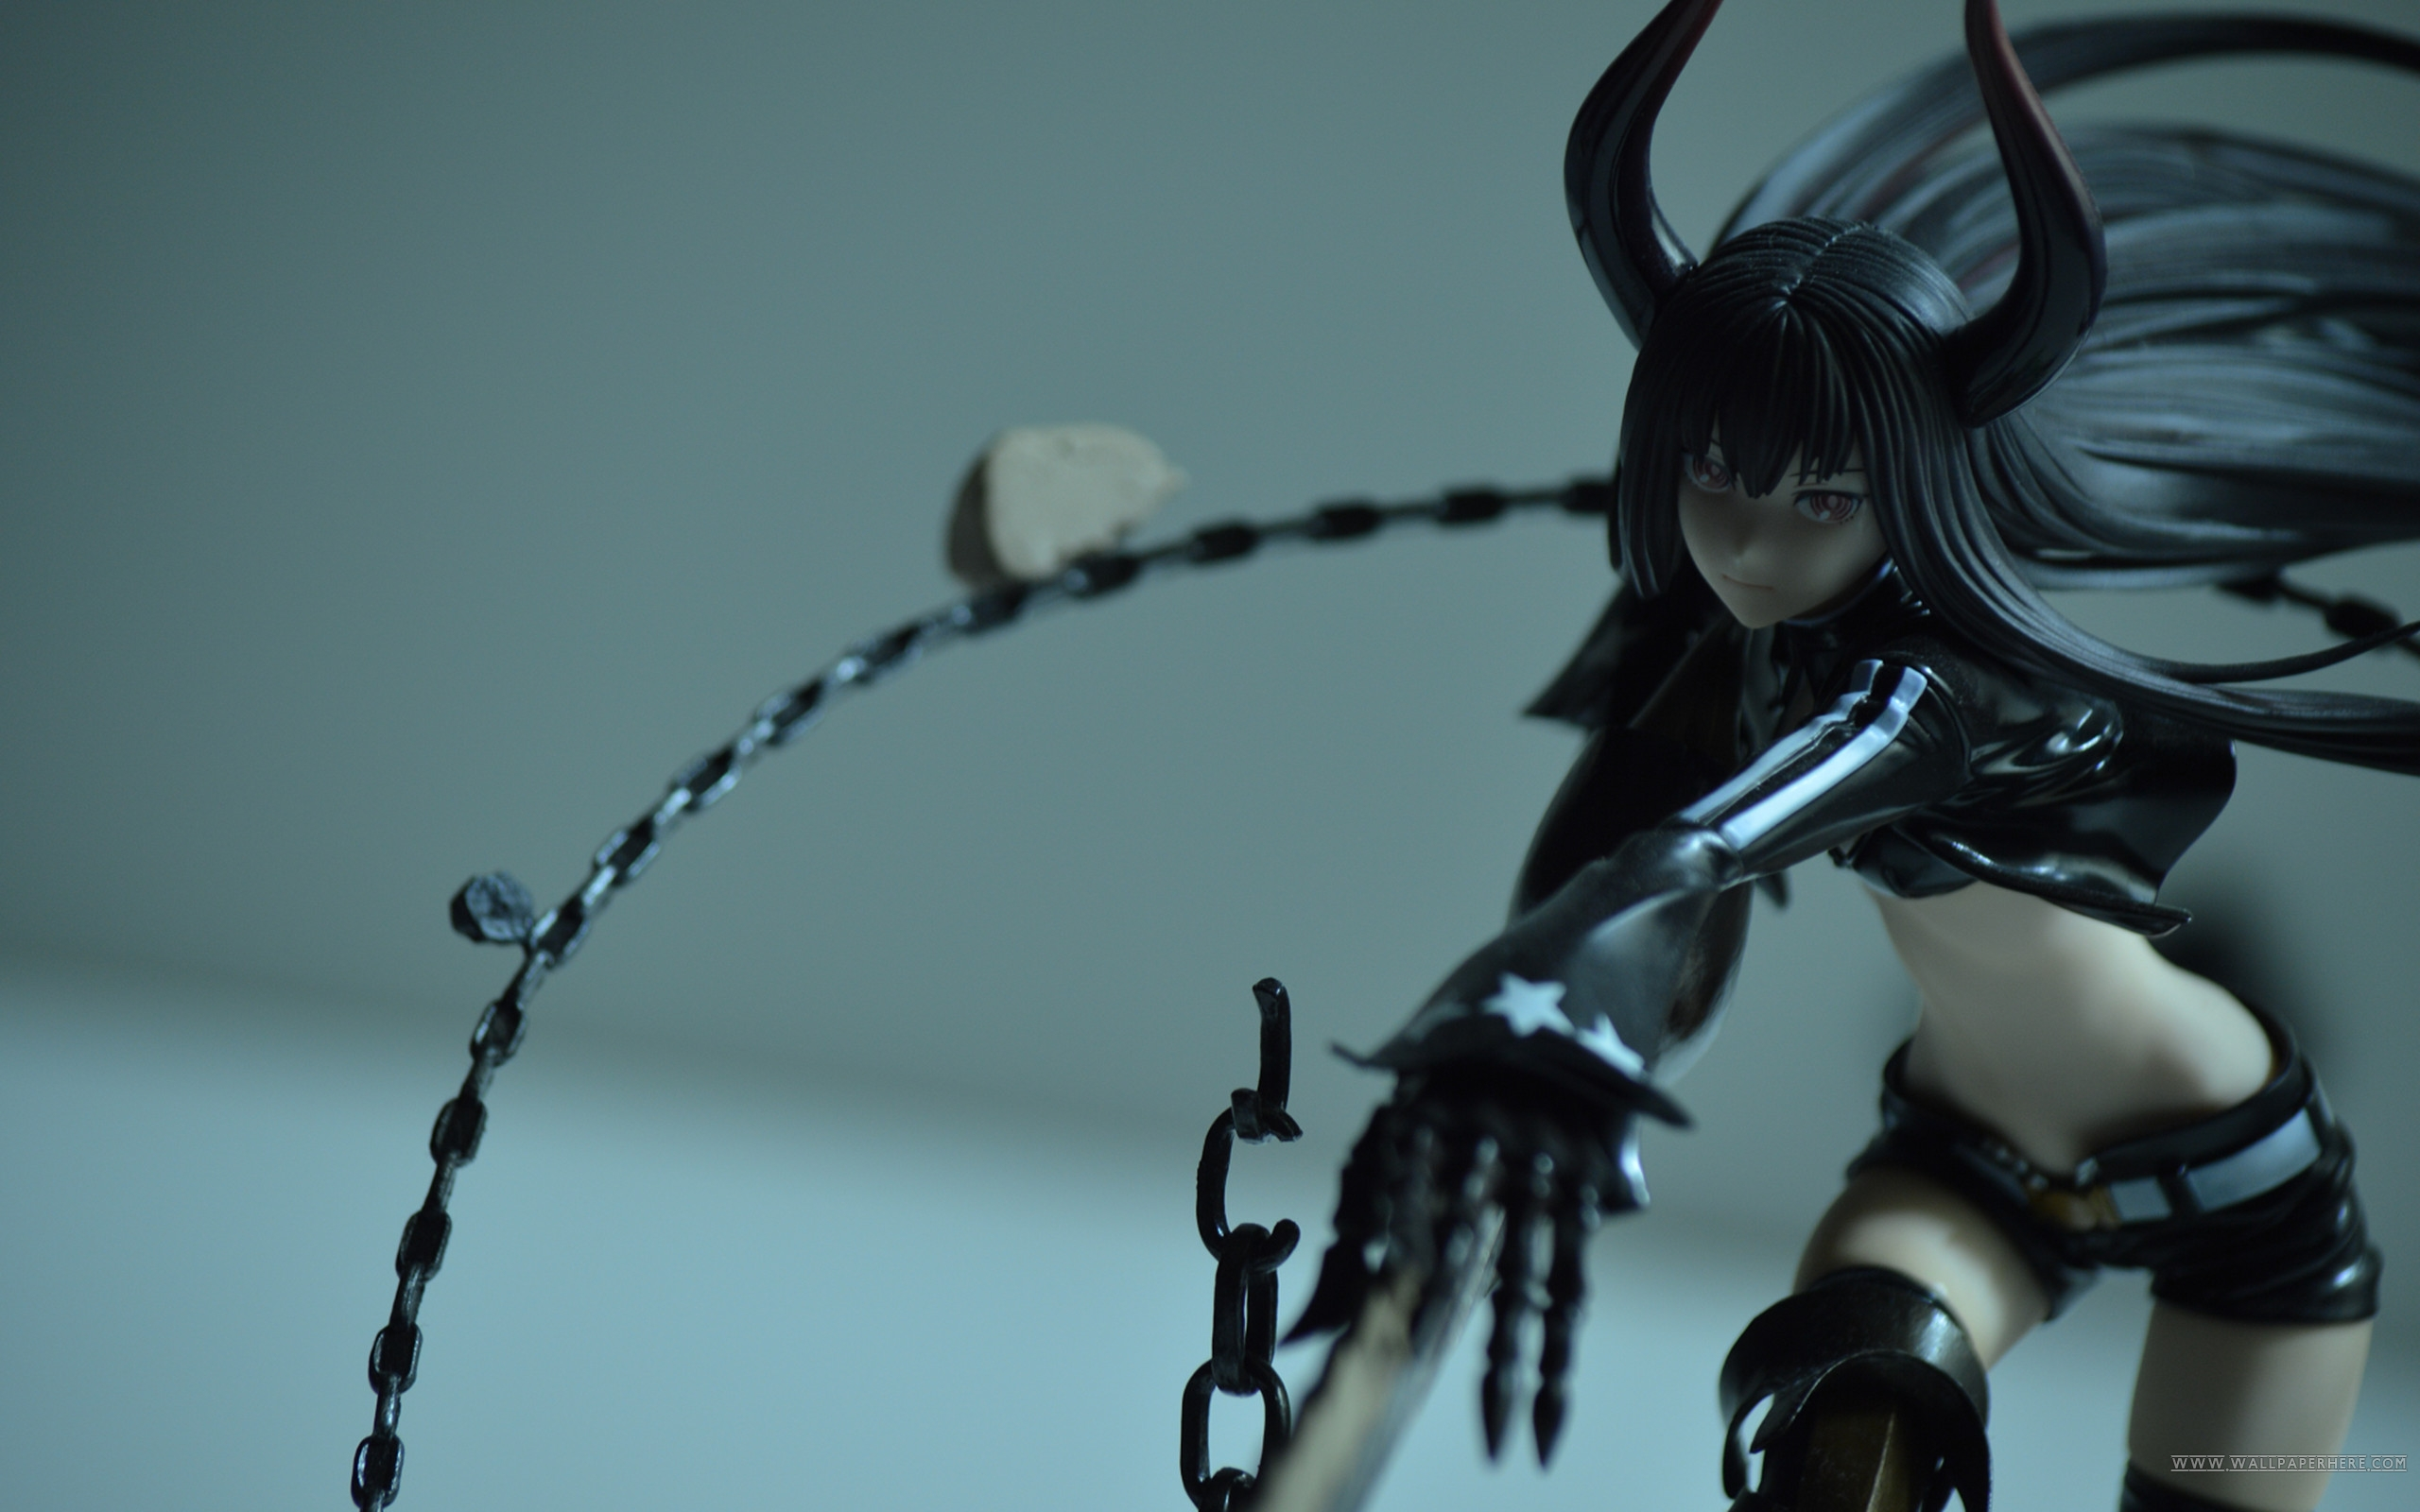 Free download 3D CG Anime Black Rock Shooter Desktop and mobile